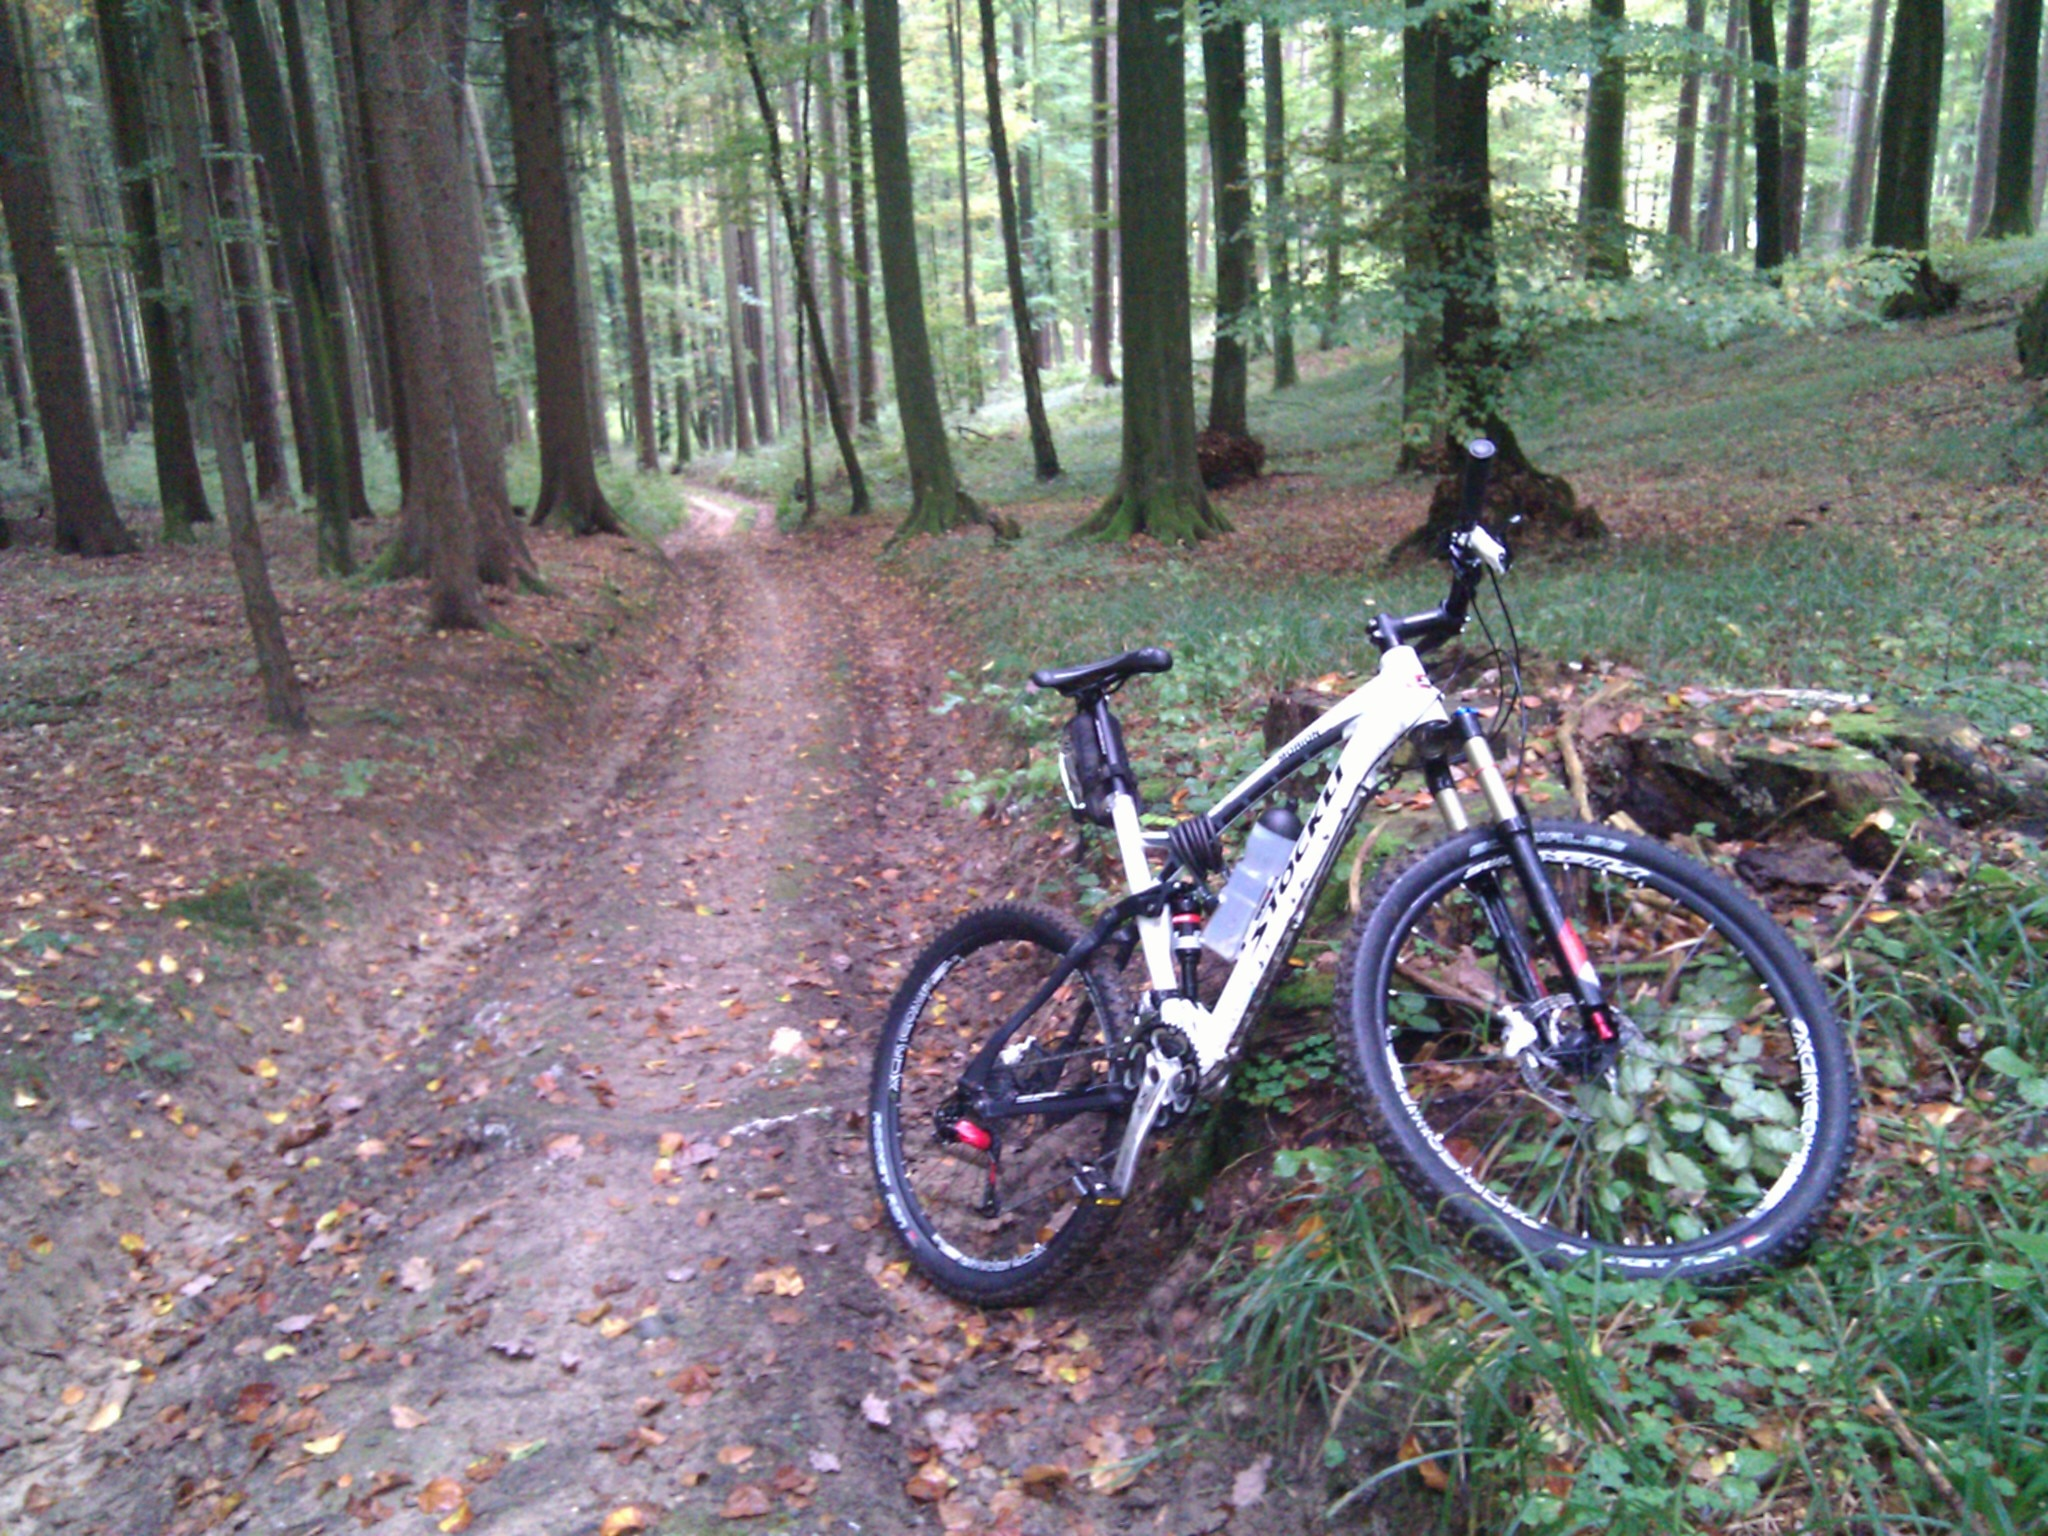 One of the wider trails in the forest. Others were overgrown single track with wet roots.